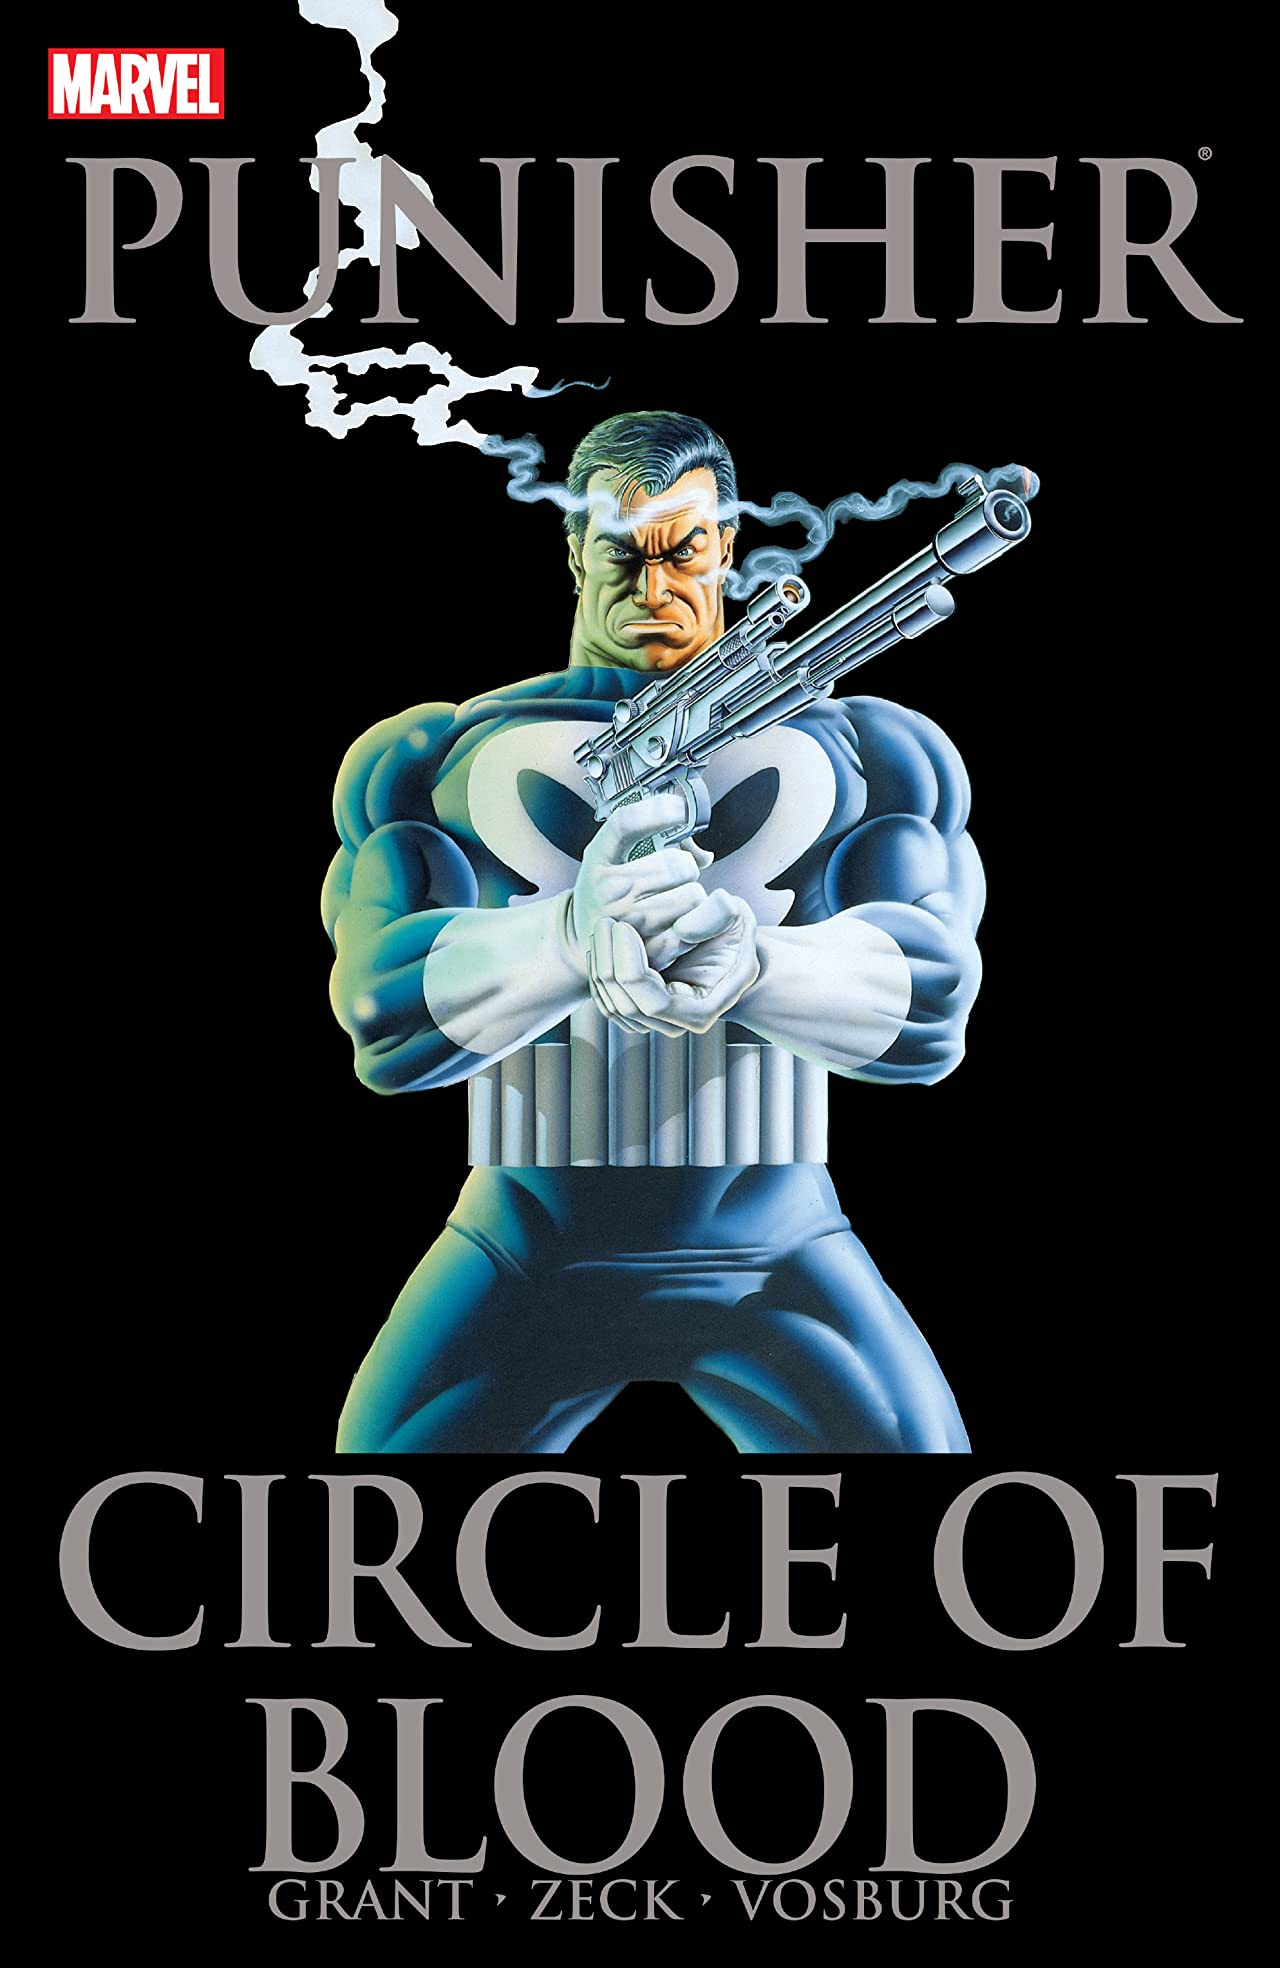 punisher circle of blood comics by comixology